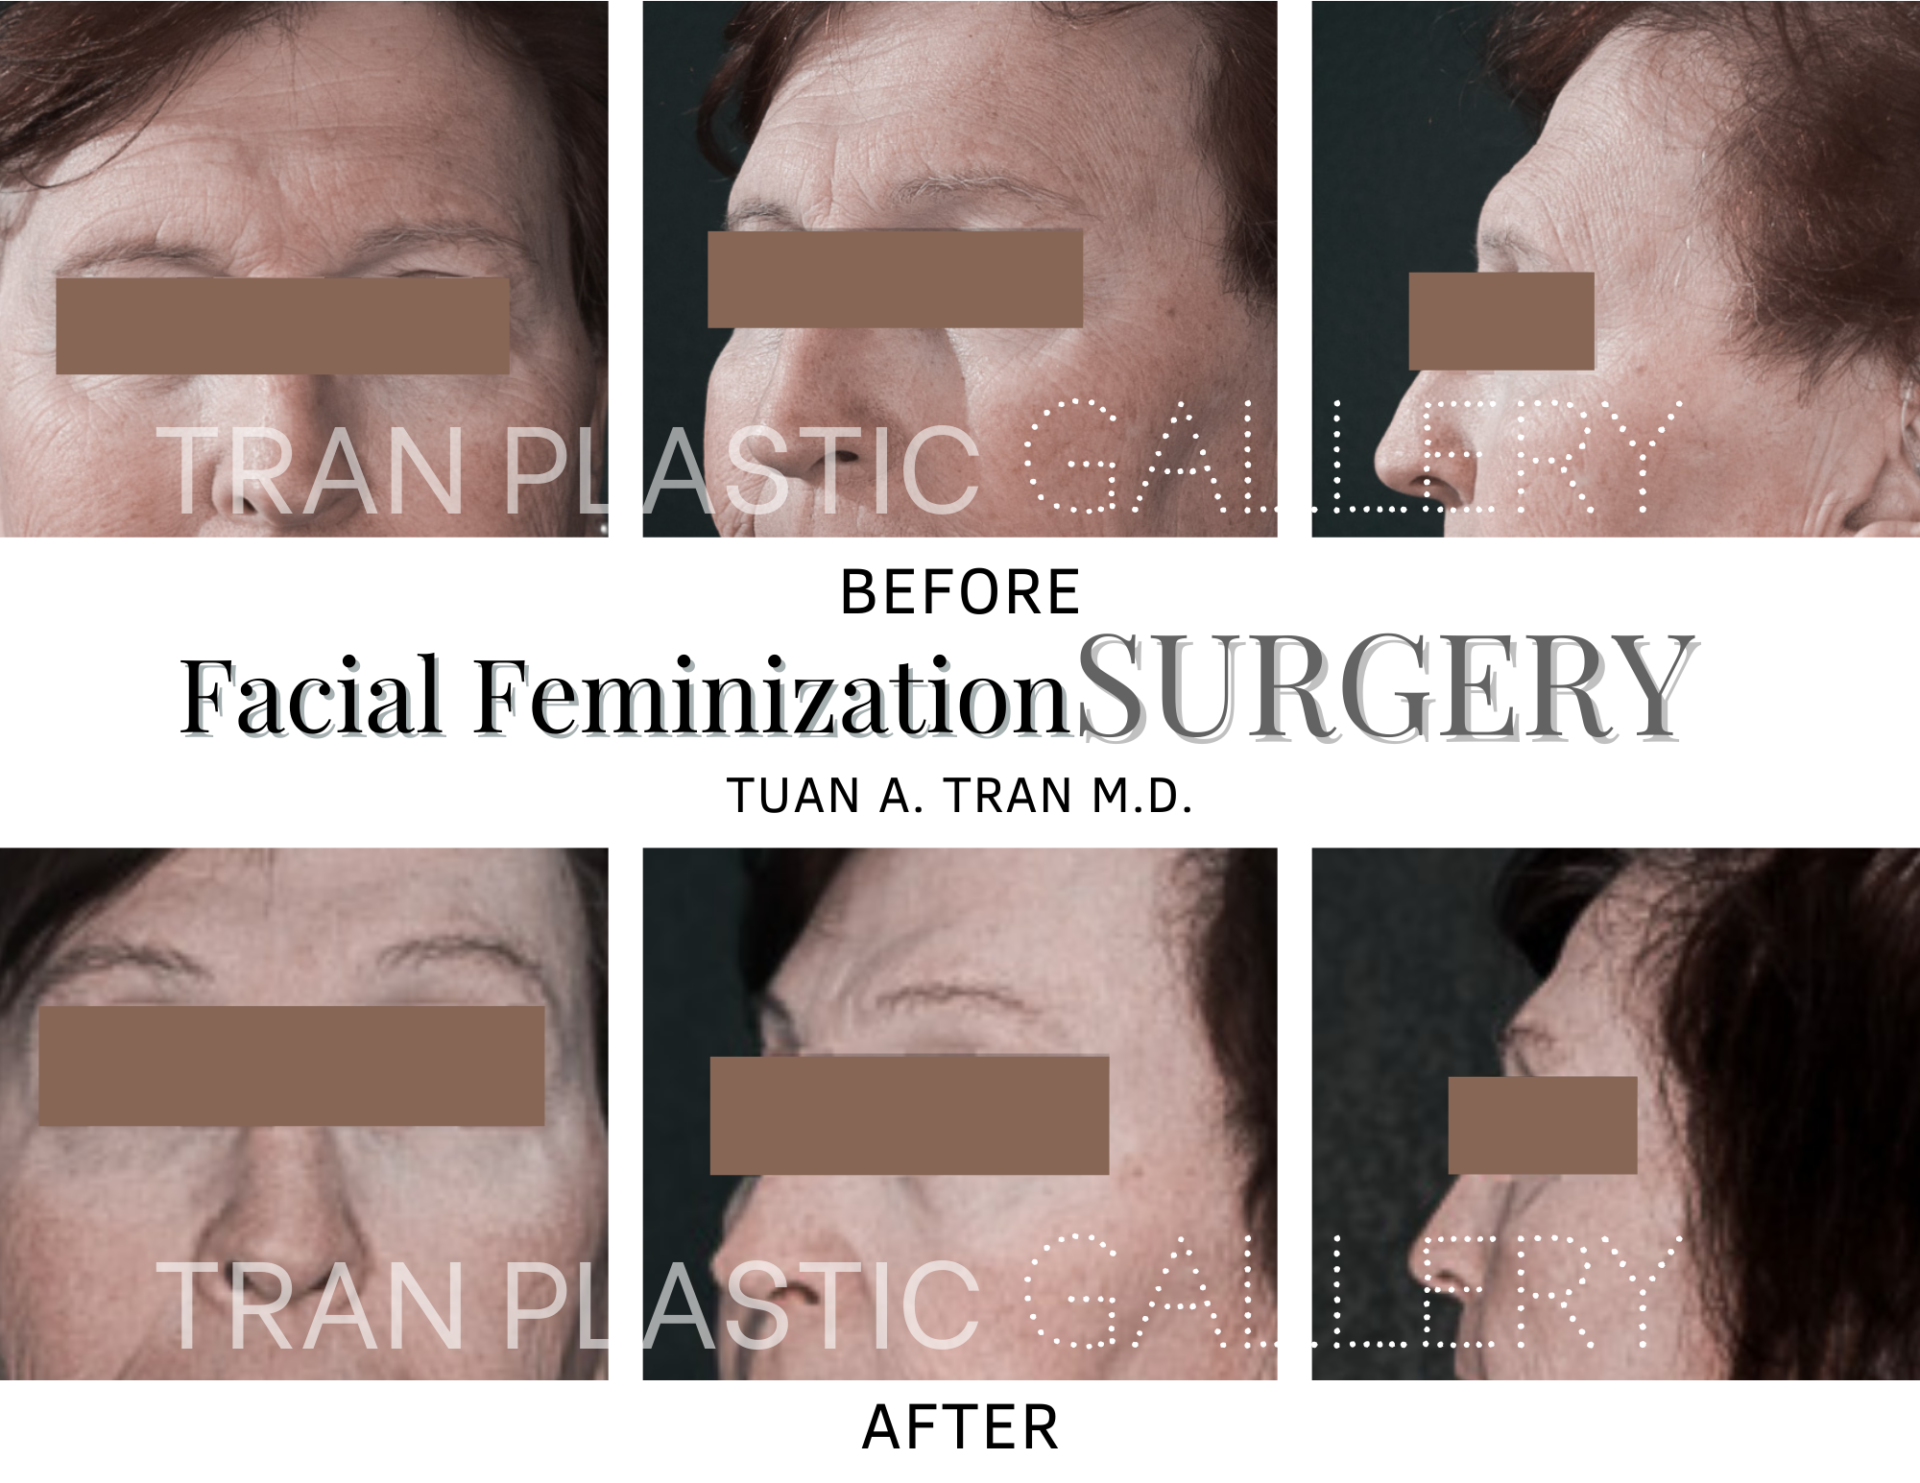 Tran Plastic Surgery - Facial Feminization